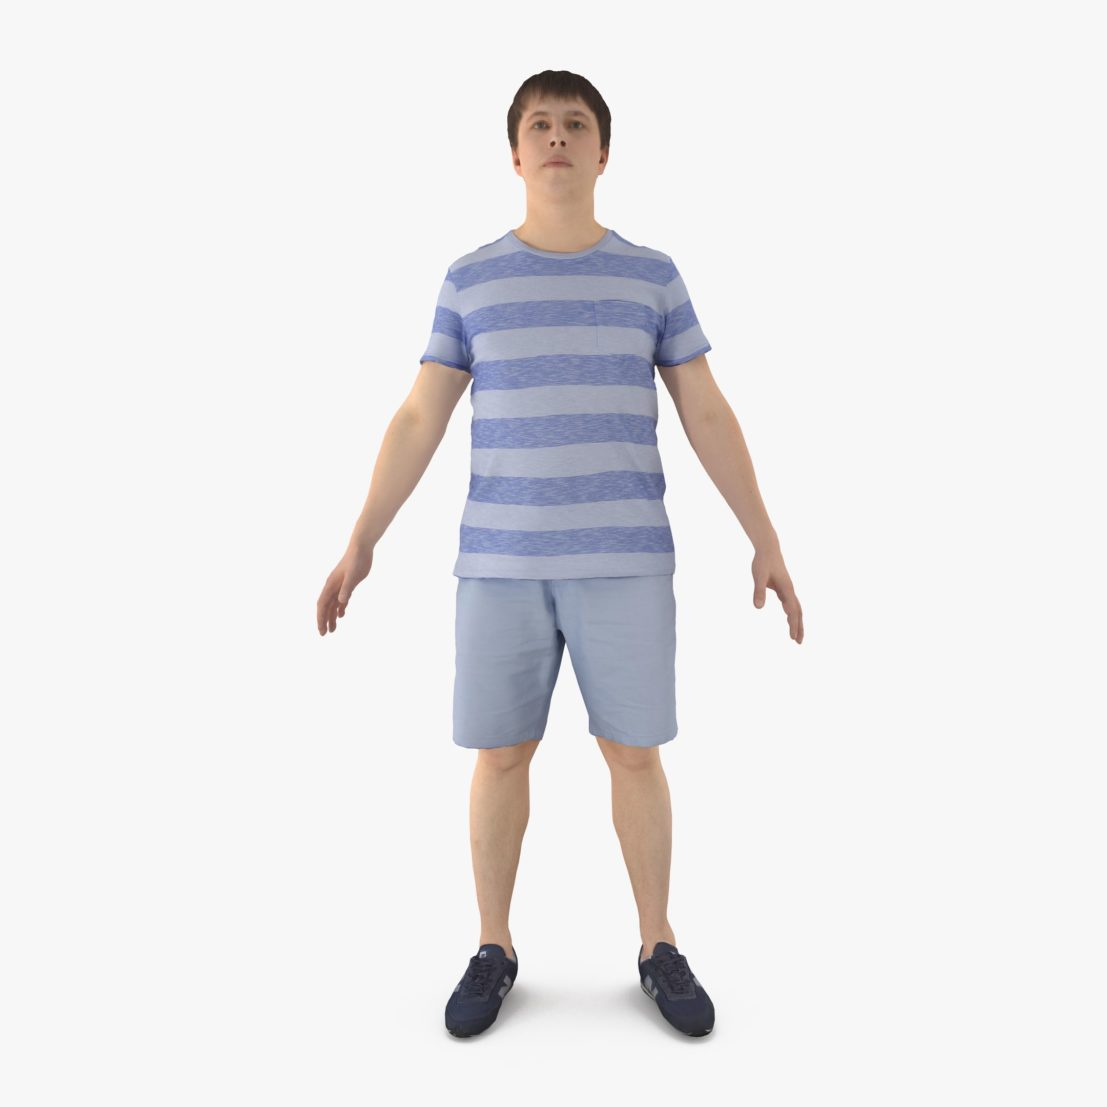 Casual Man Apose 3D Model | 3DTree Scanning Studio